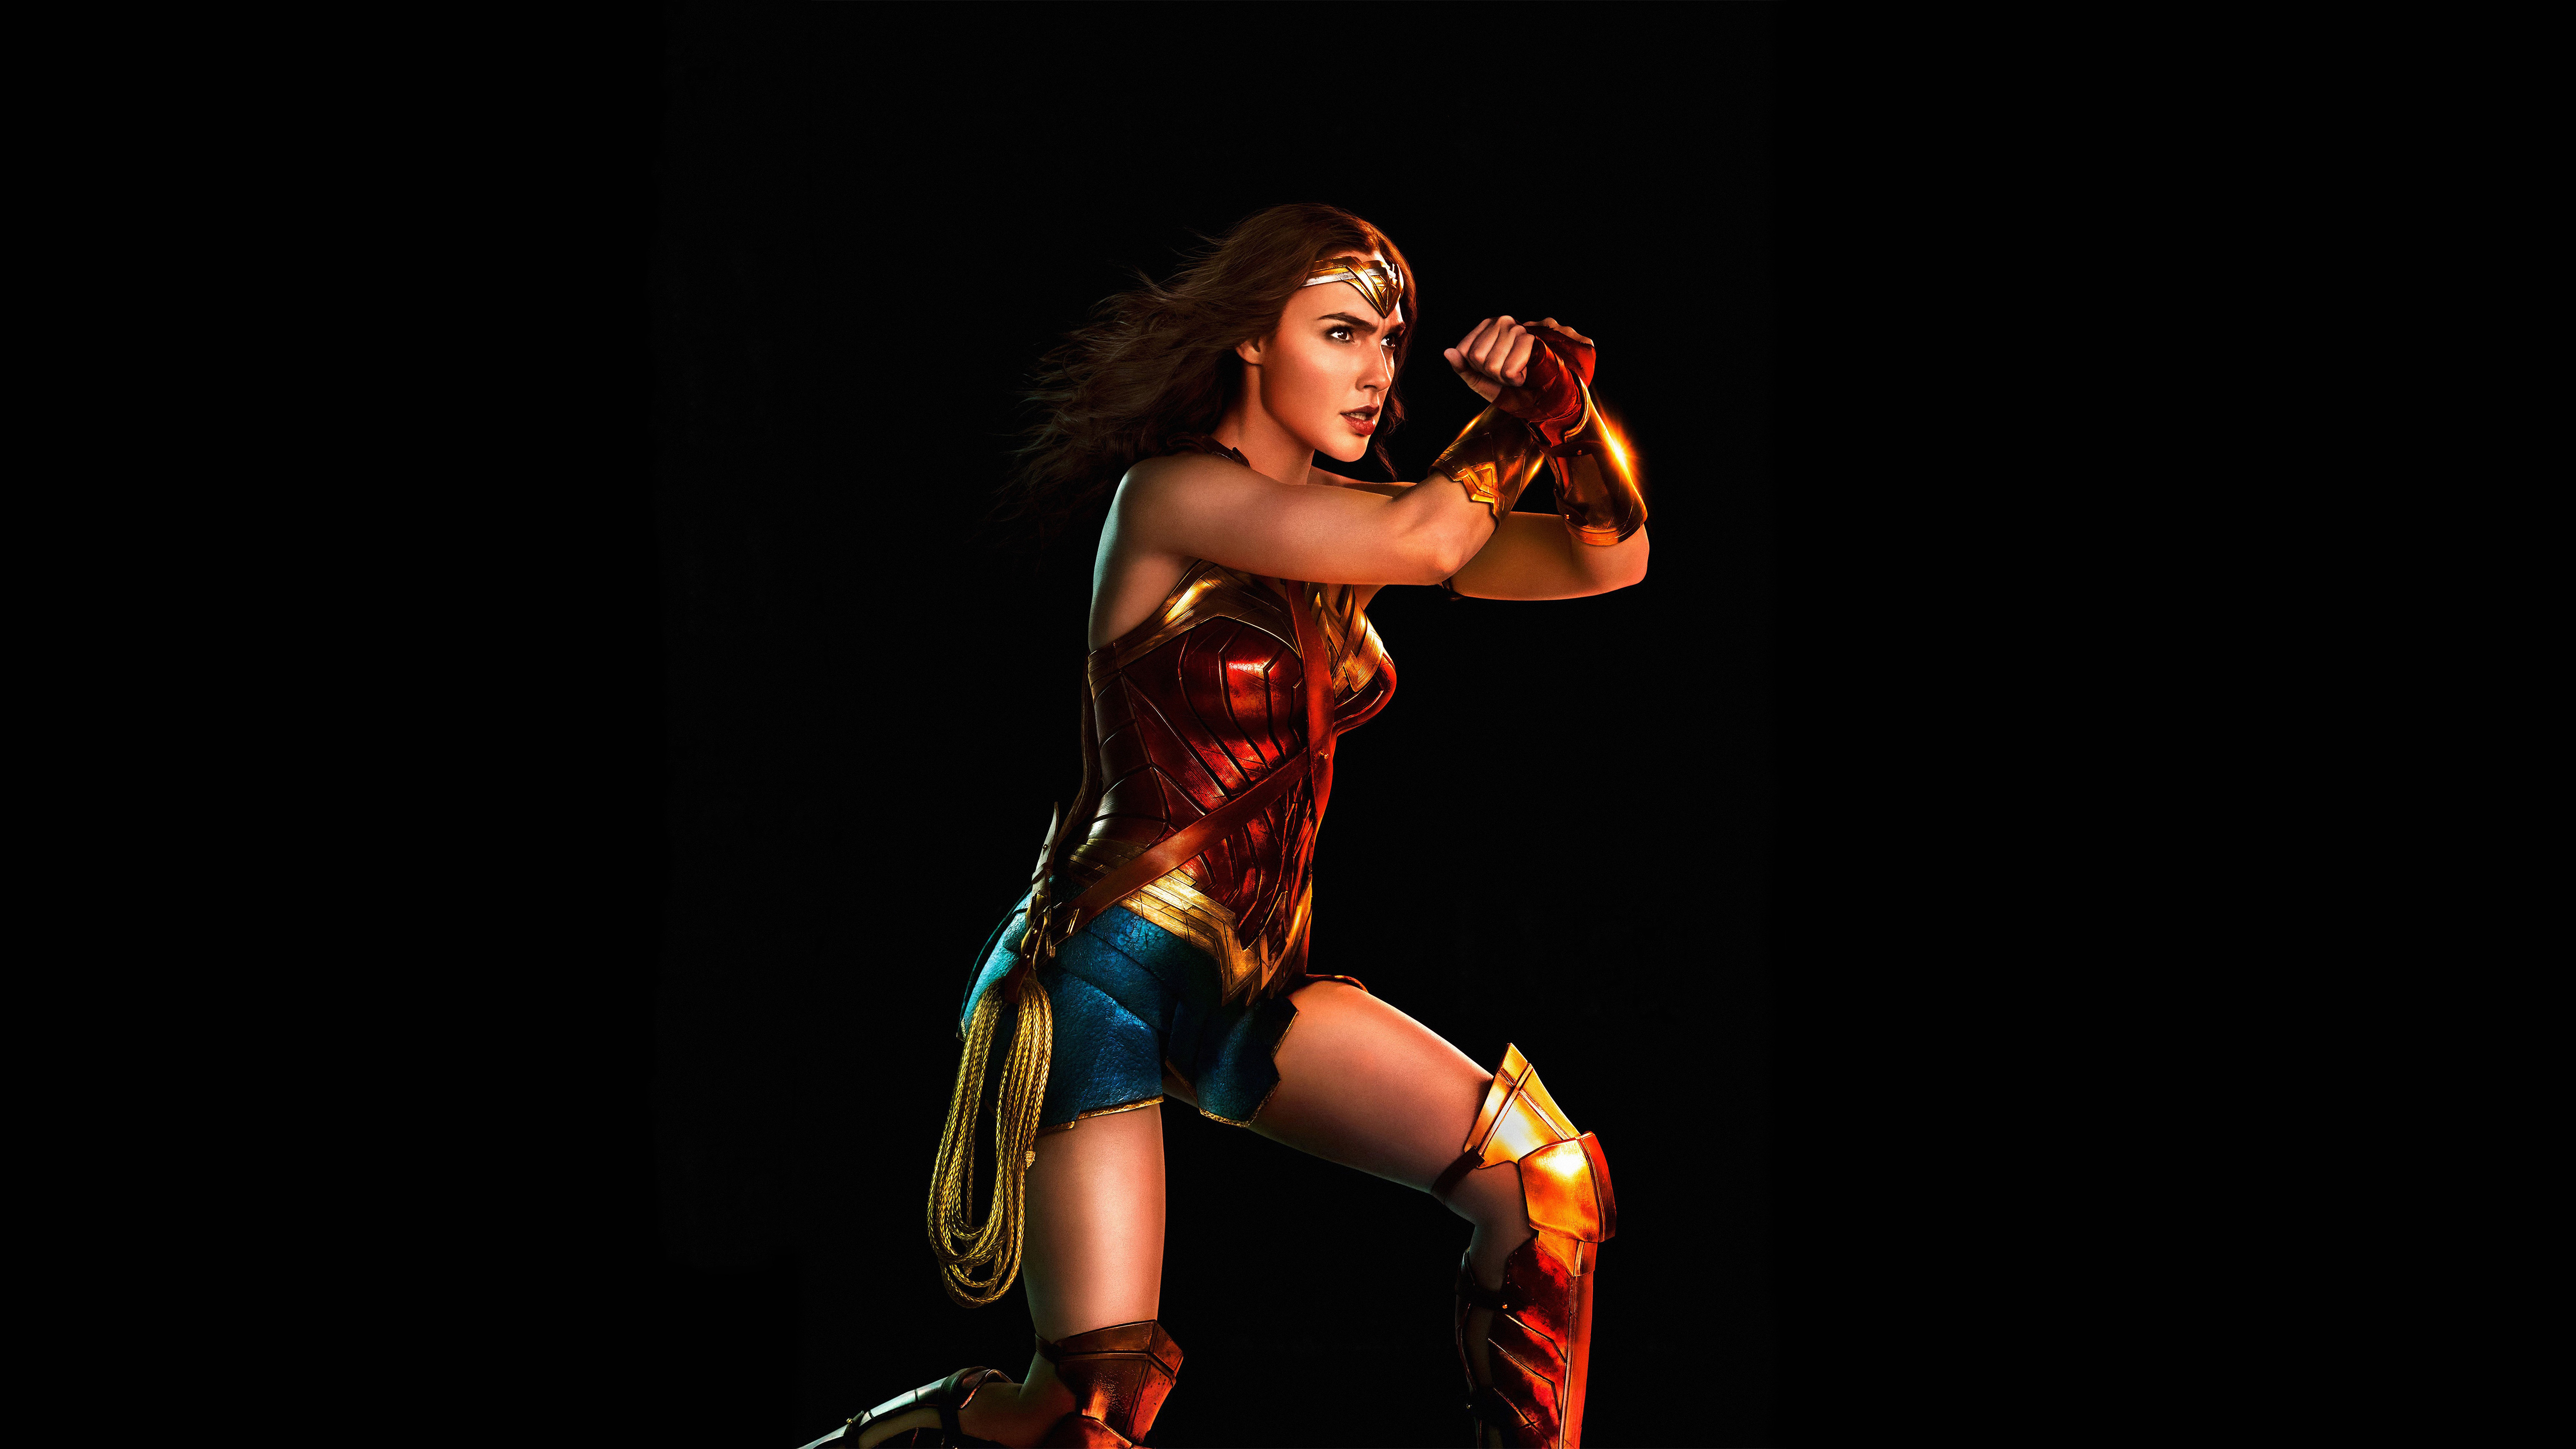 4k Wallpaper 3d 3840x2400 3840x2400 Wonder Woman Justice League 5k 4k Hd 4k